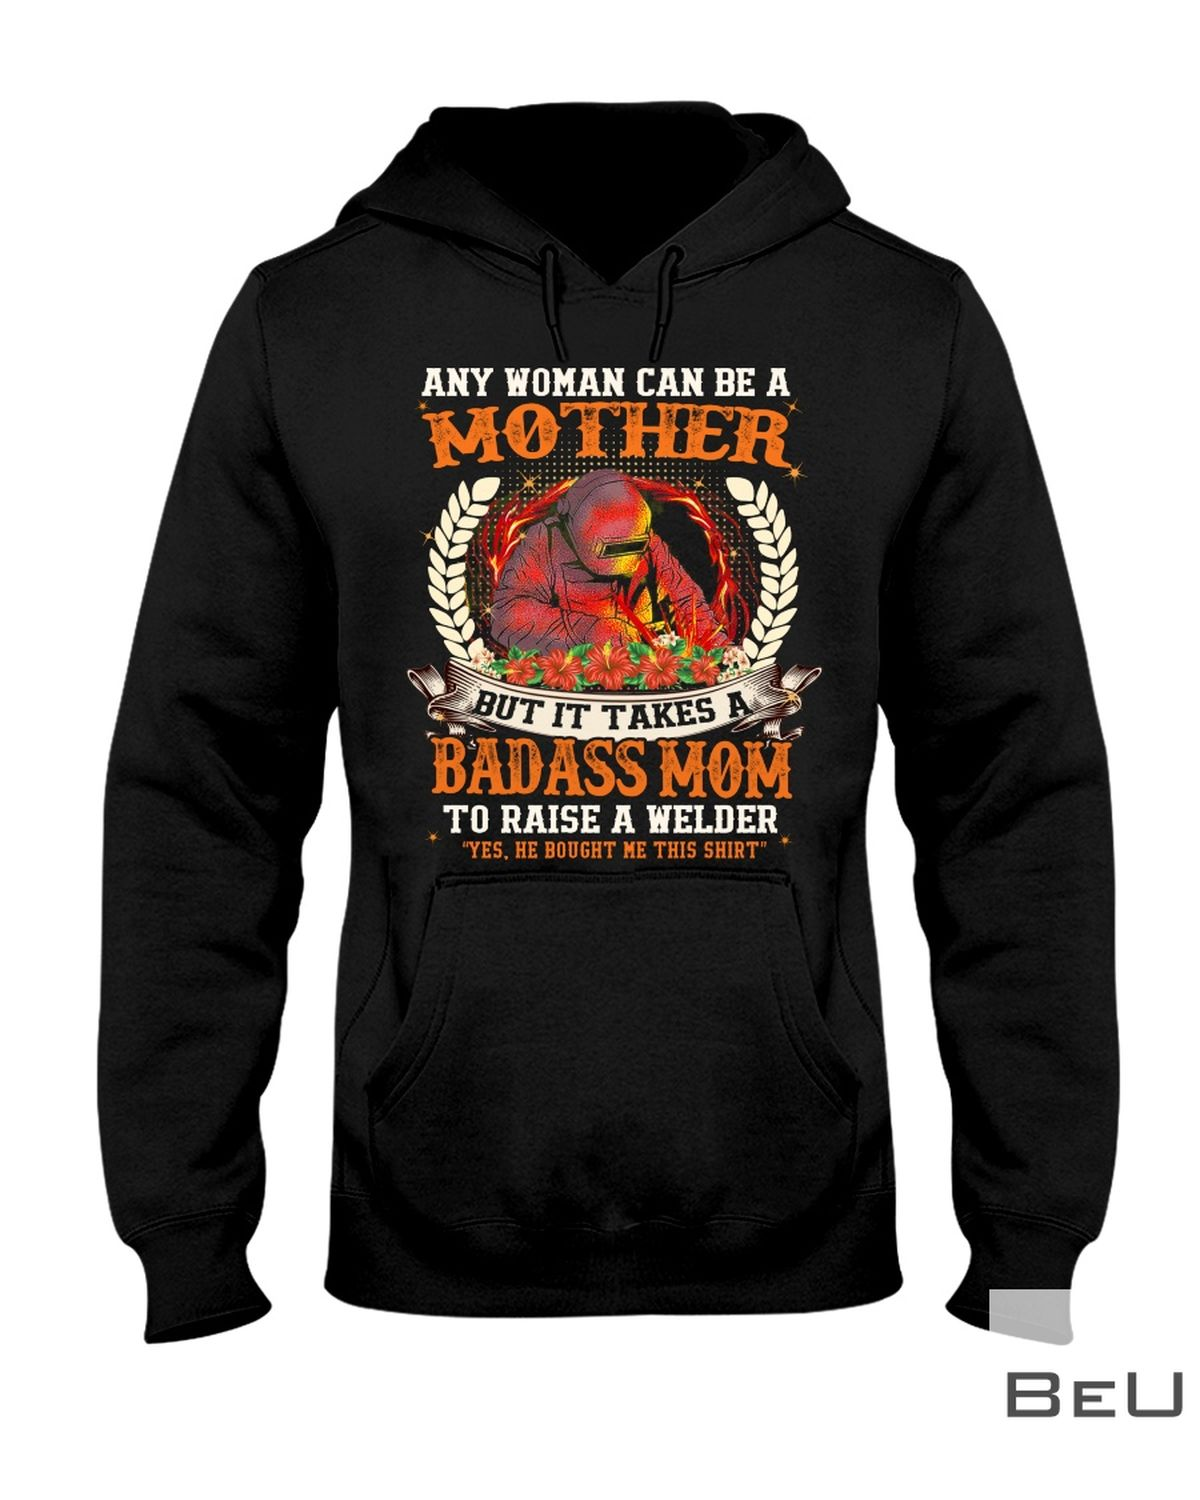 Any Woman Can Be A Mother But It Take A Badass Mom To Raise A Welder Shirtz